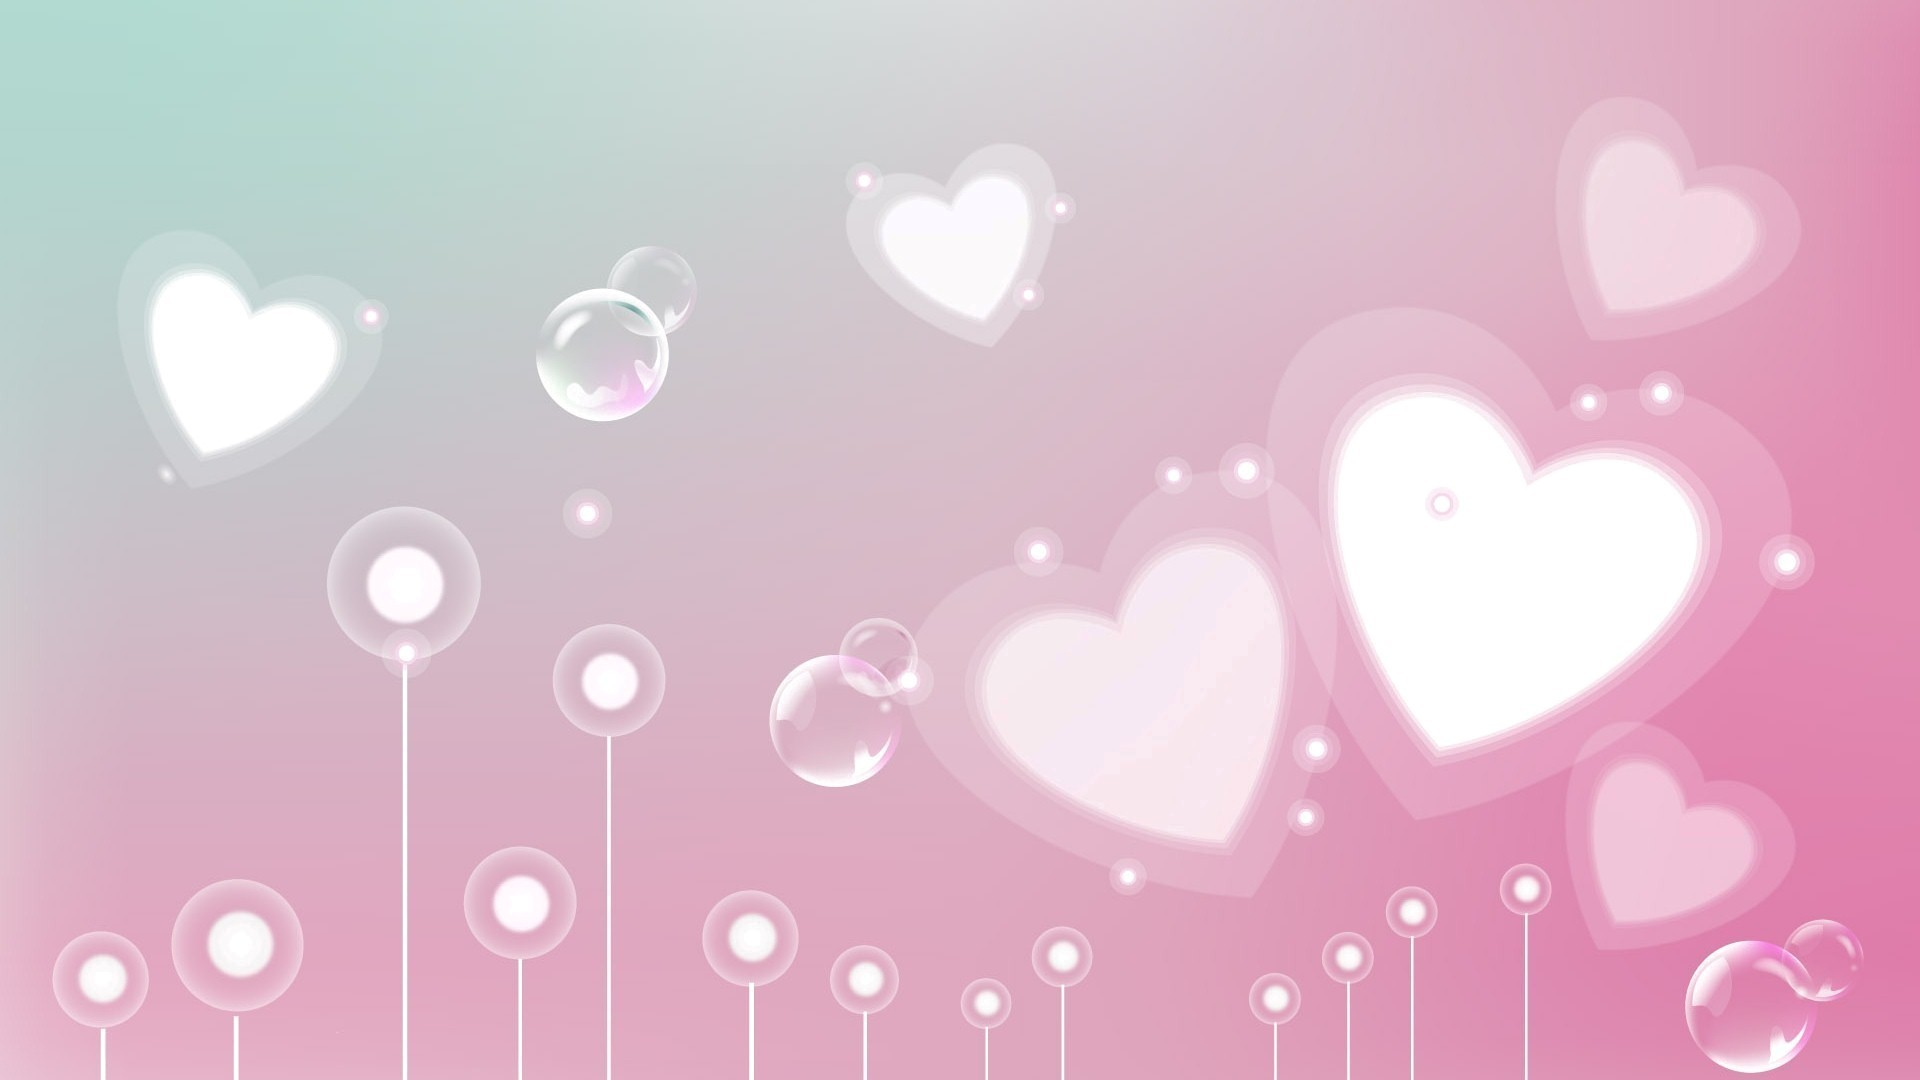 1920x1080 pink heart background - Google Search